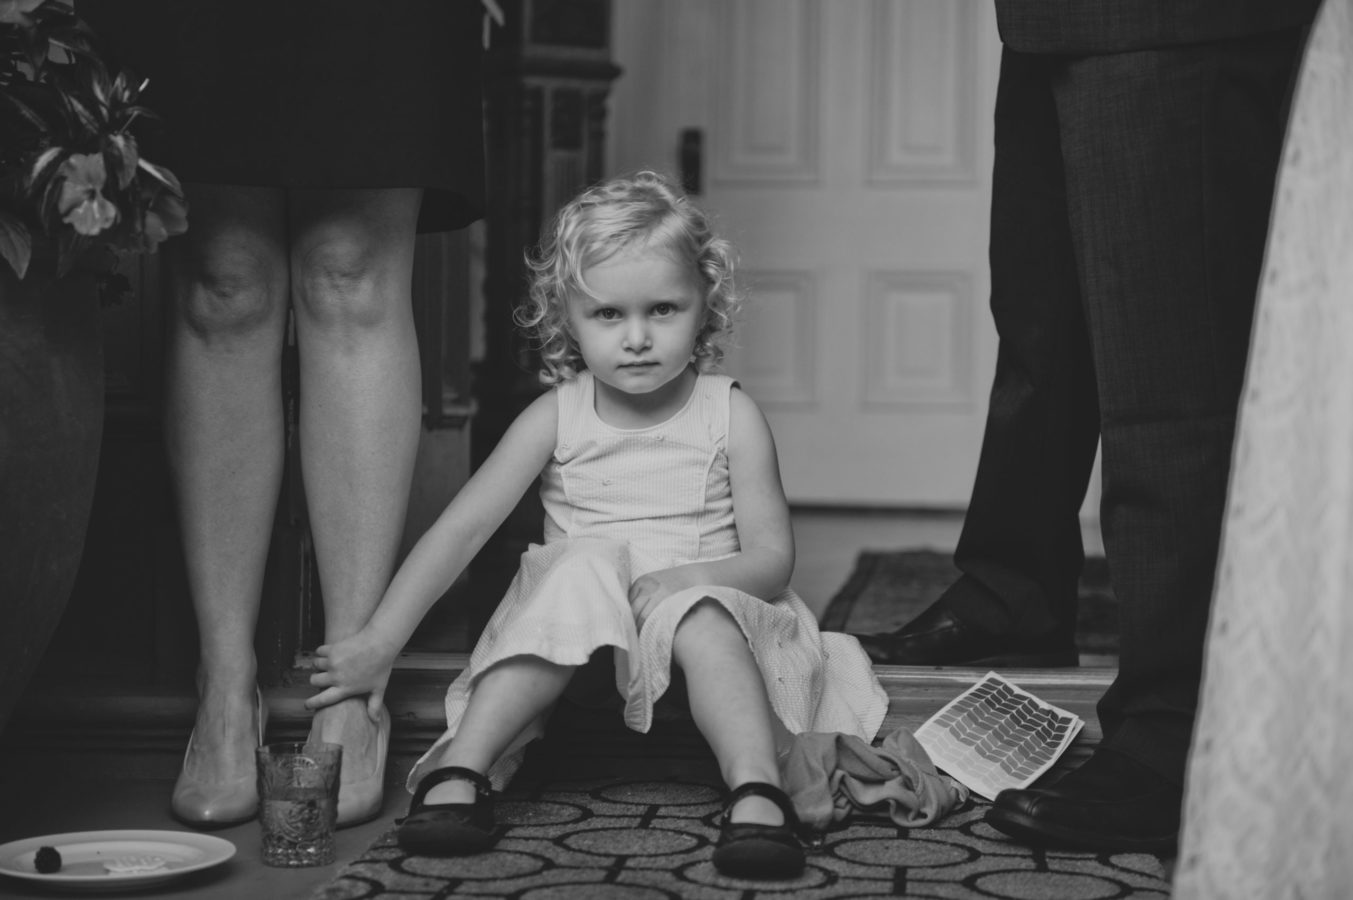 young girl in a dress sitting amongst adult legs holding her mother's ankle at a wedding